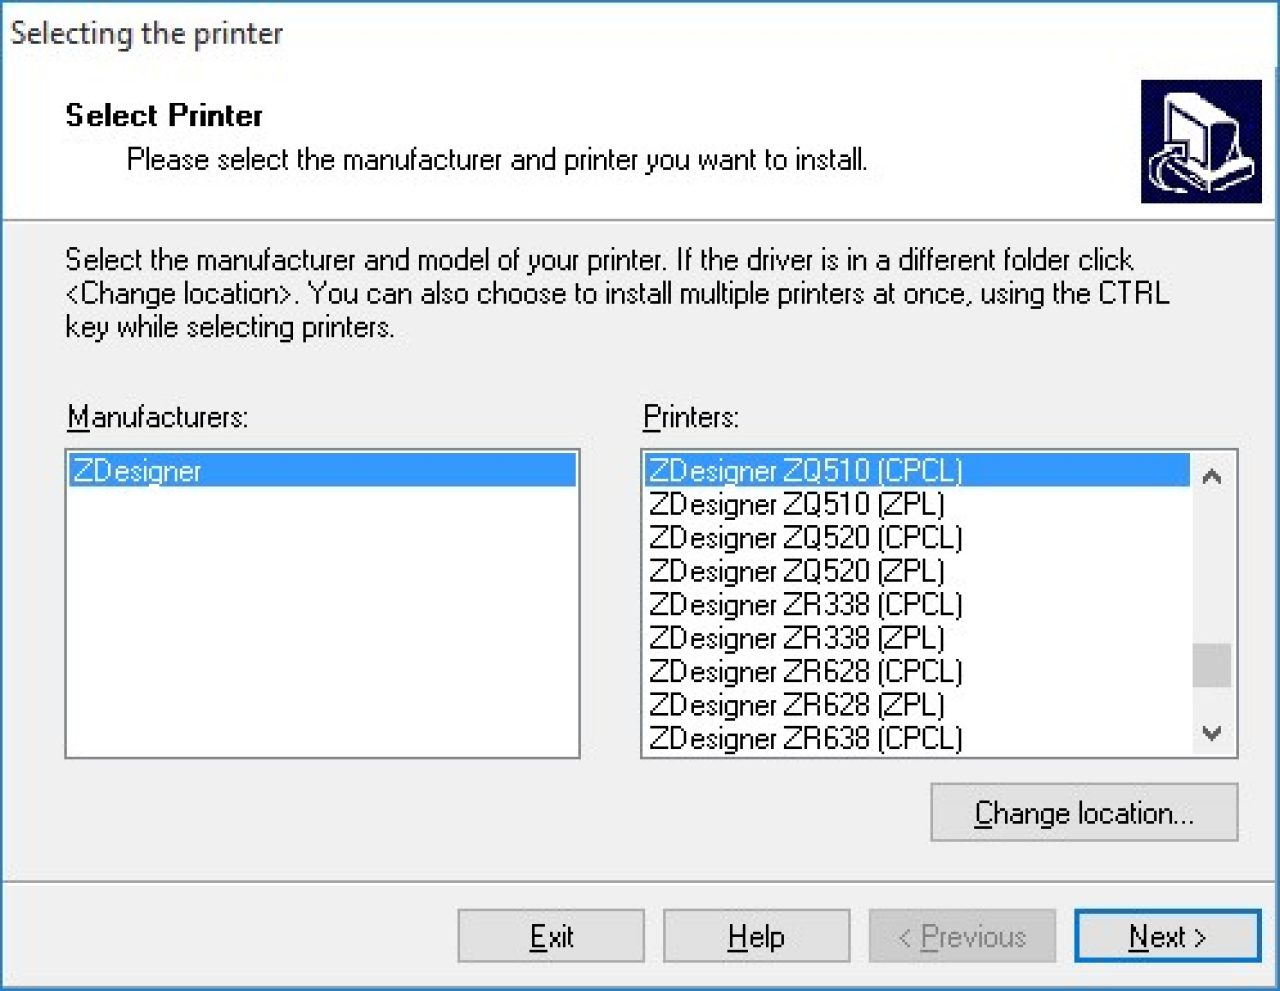 Install Printer screen capture